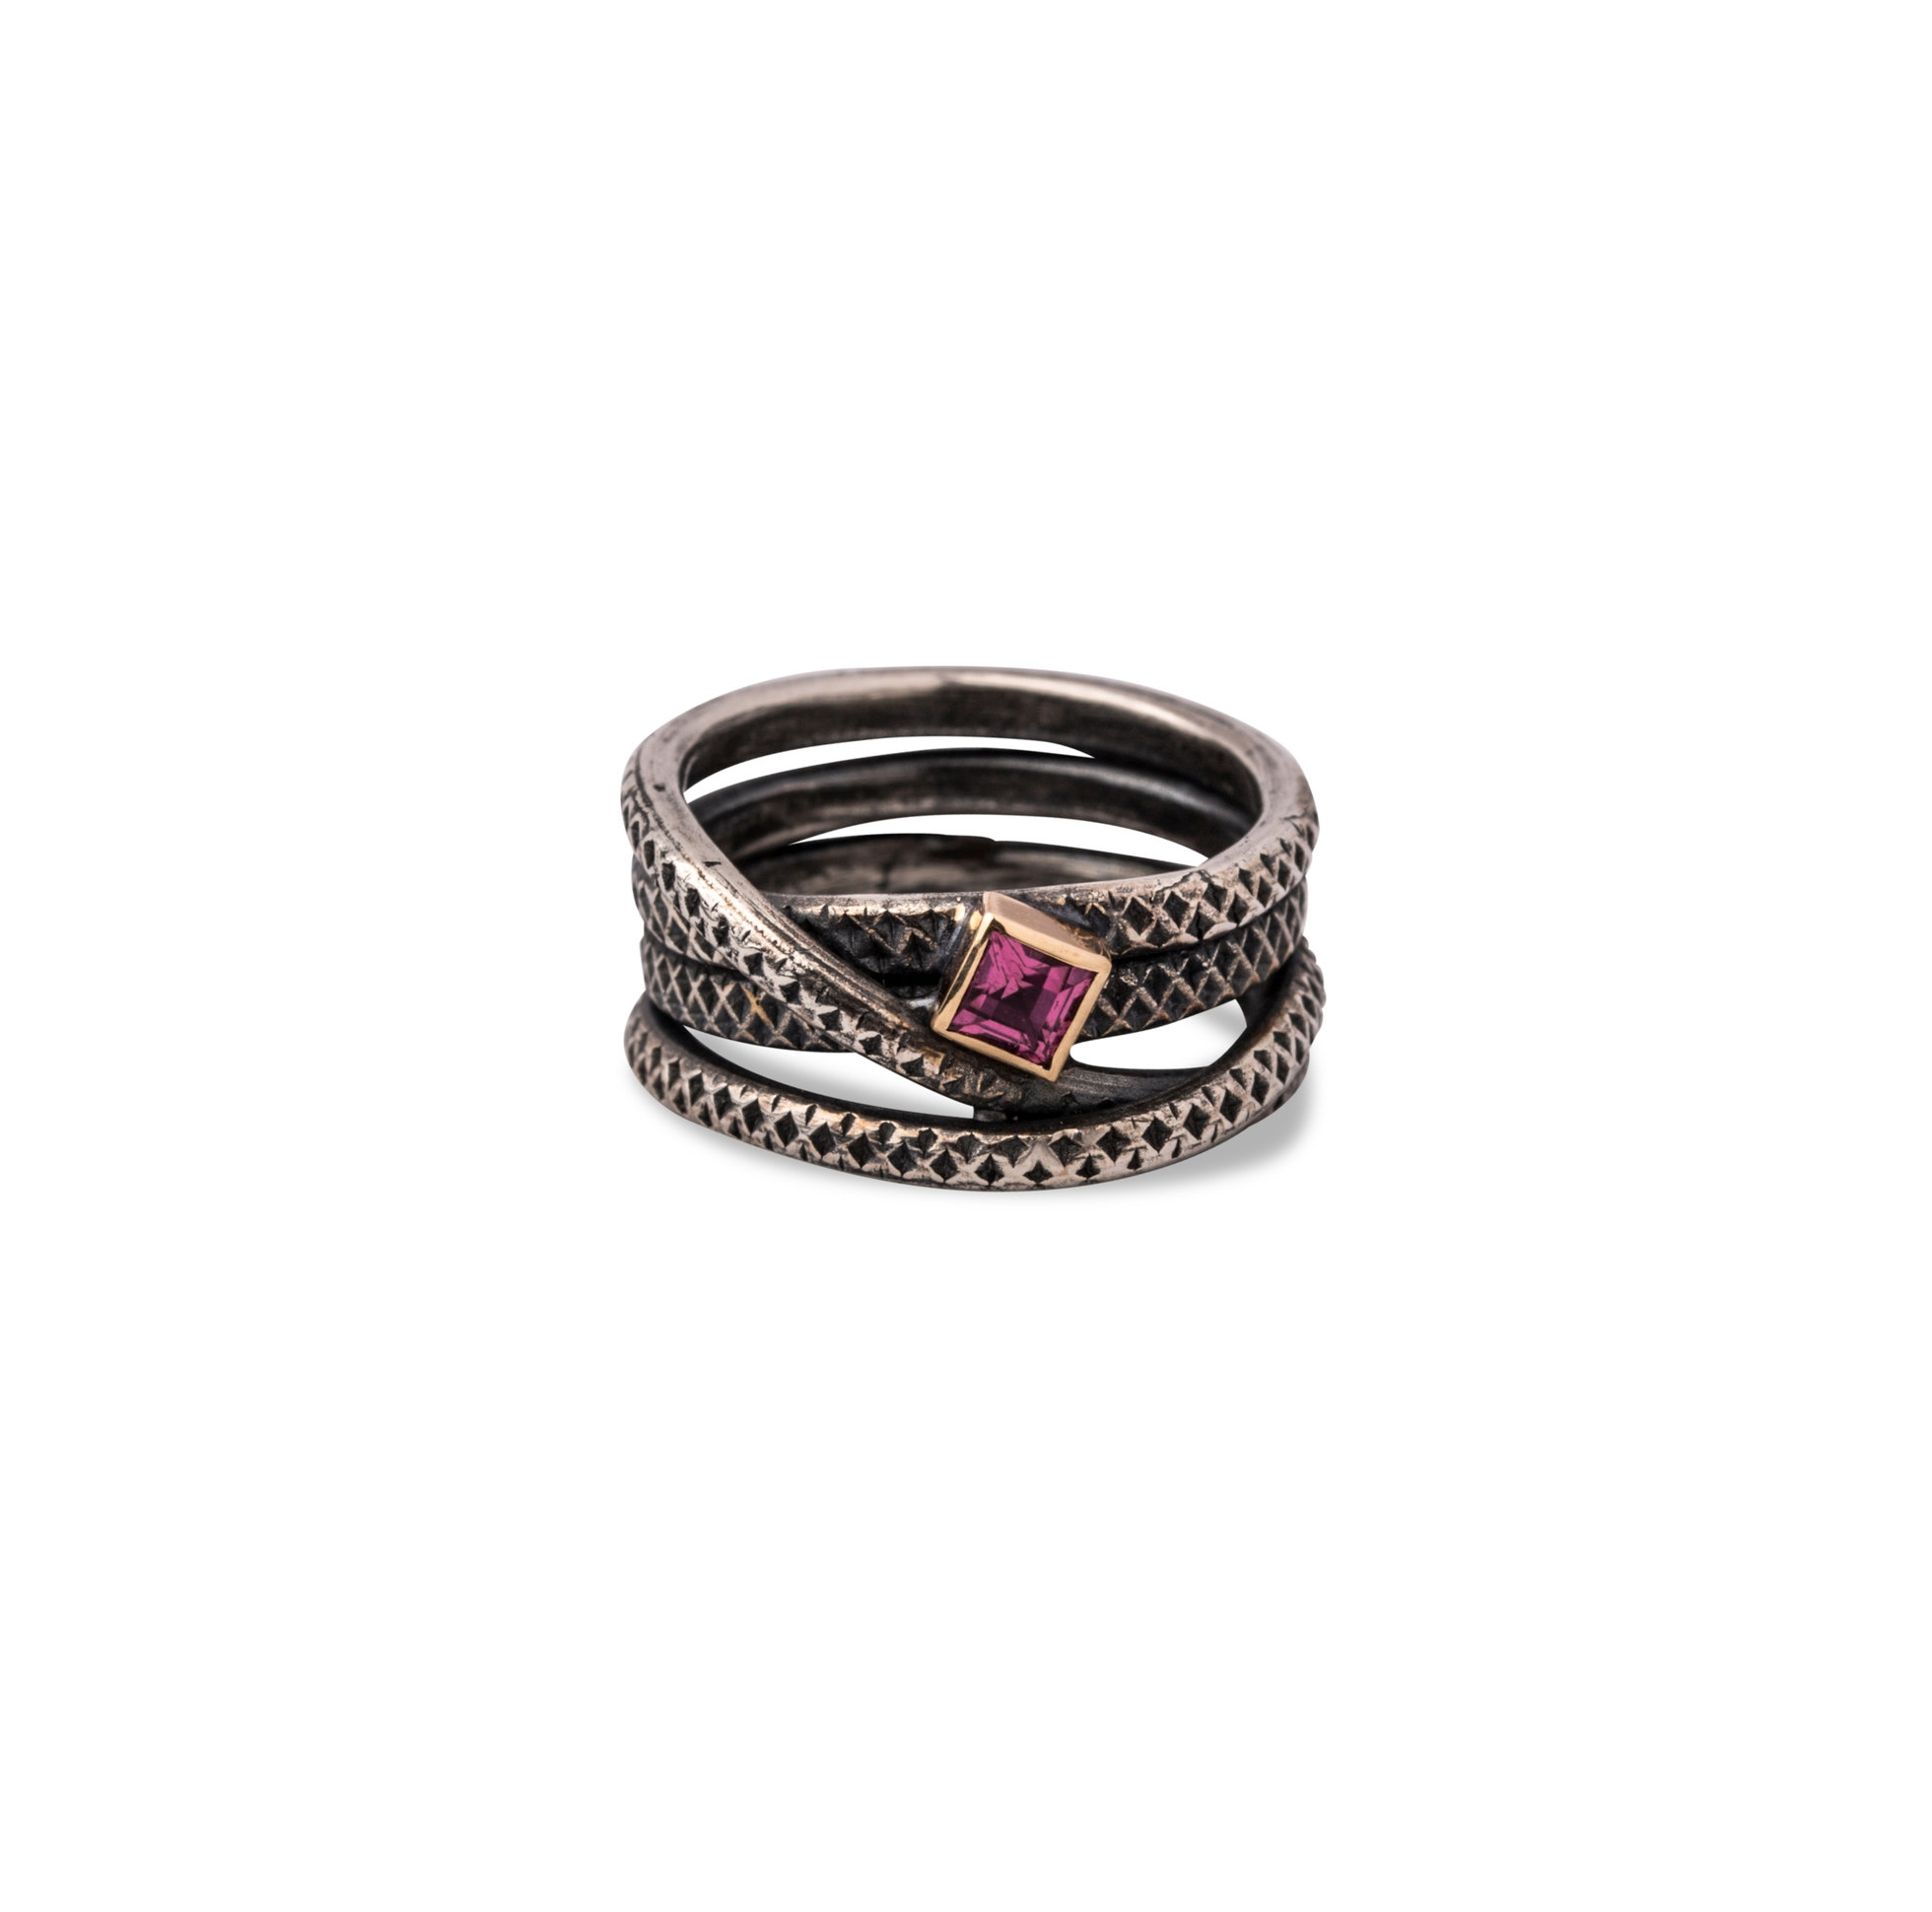 ring_lace_cup_16227.JPG